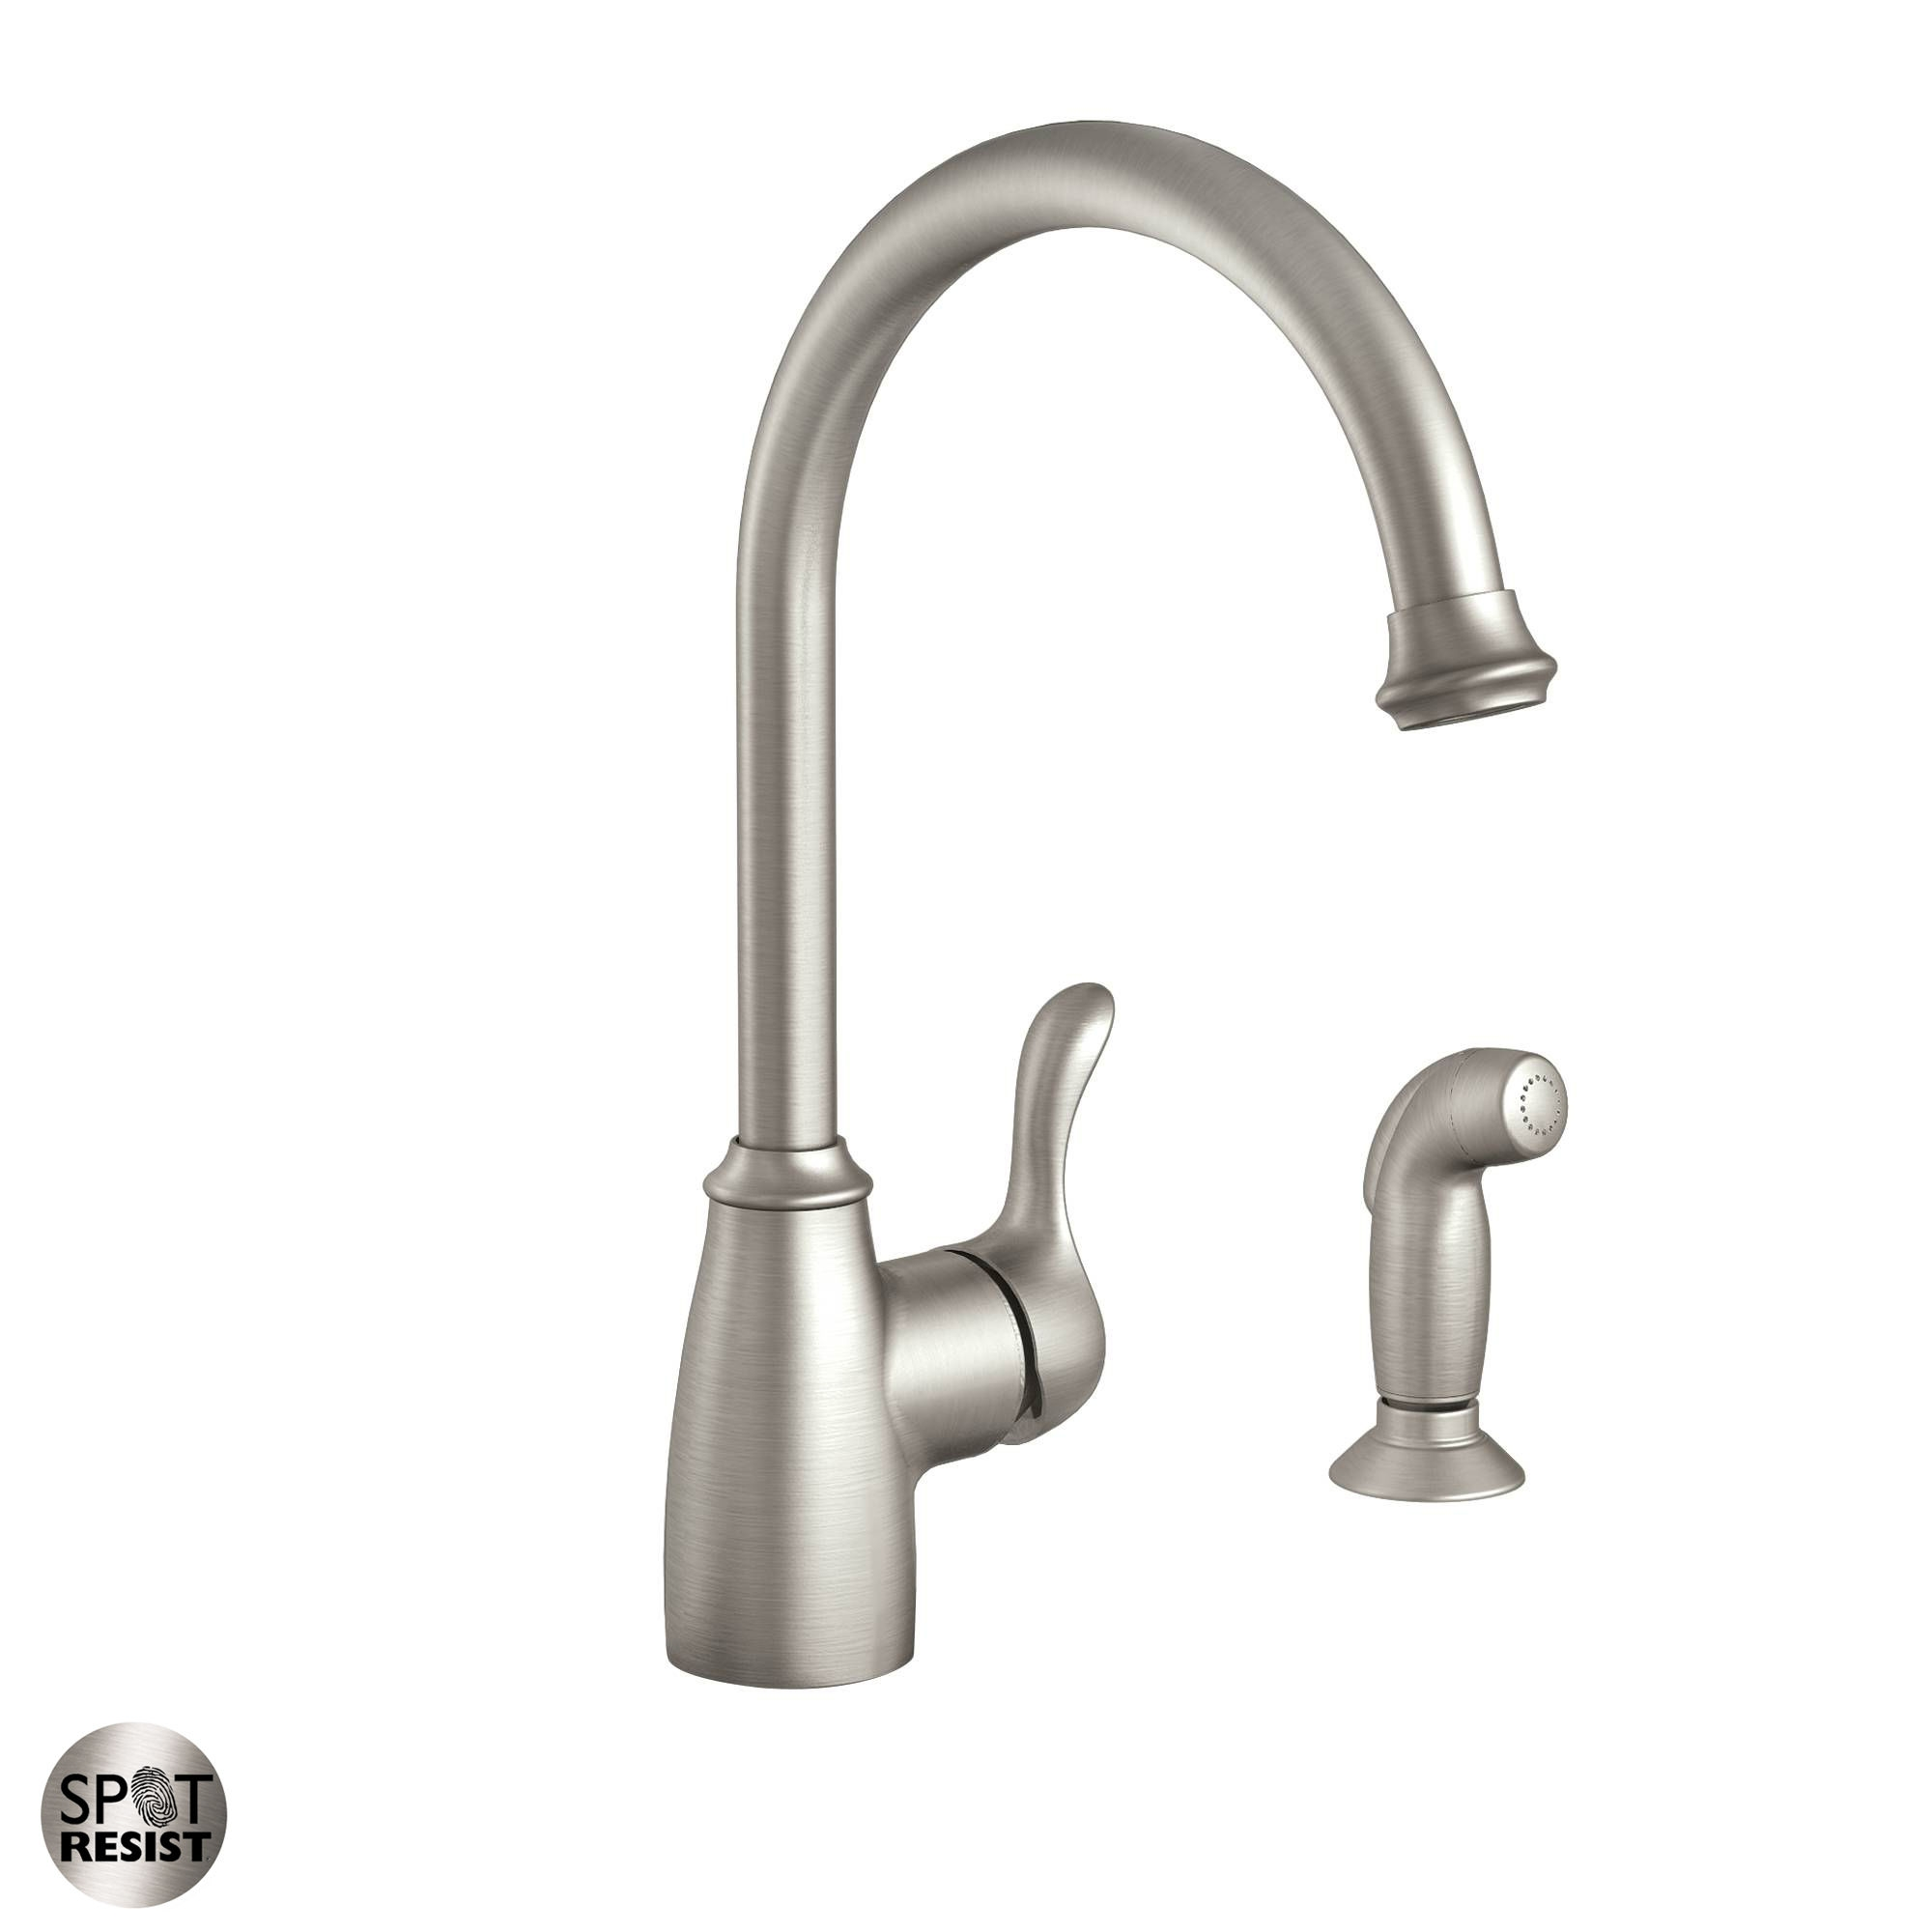 Ideas, moen 87313srs spot resist stainless kitchen faucet with side spray within proportions 2000 x 2000  .